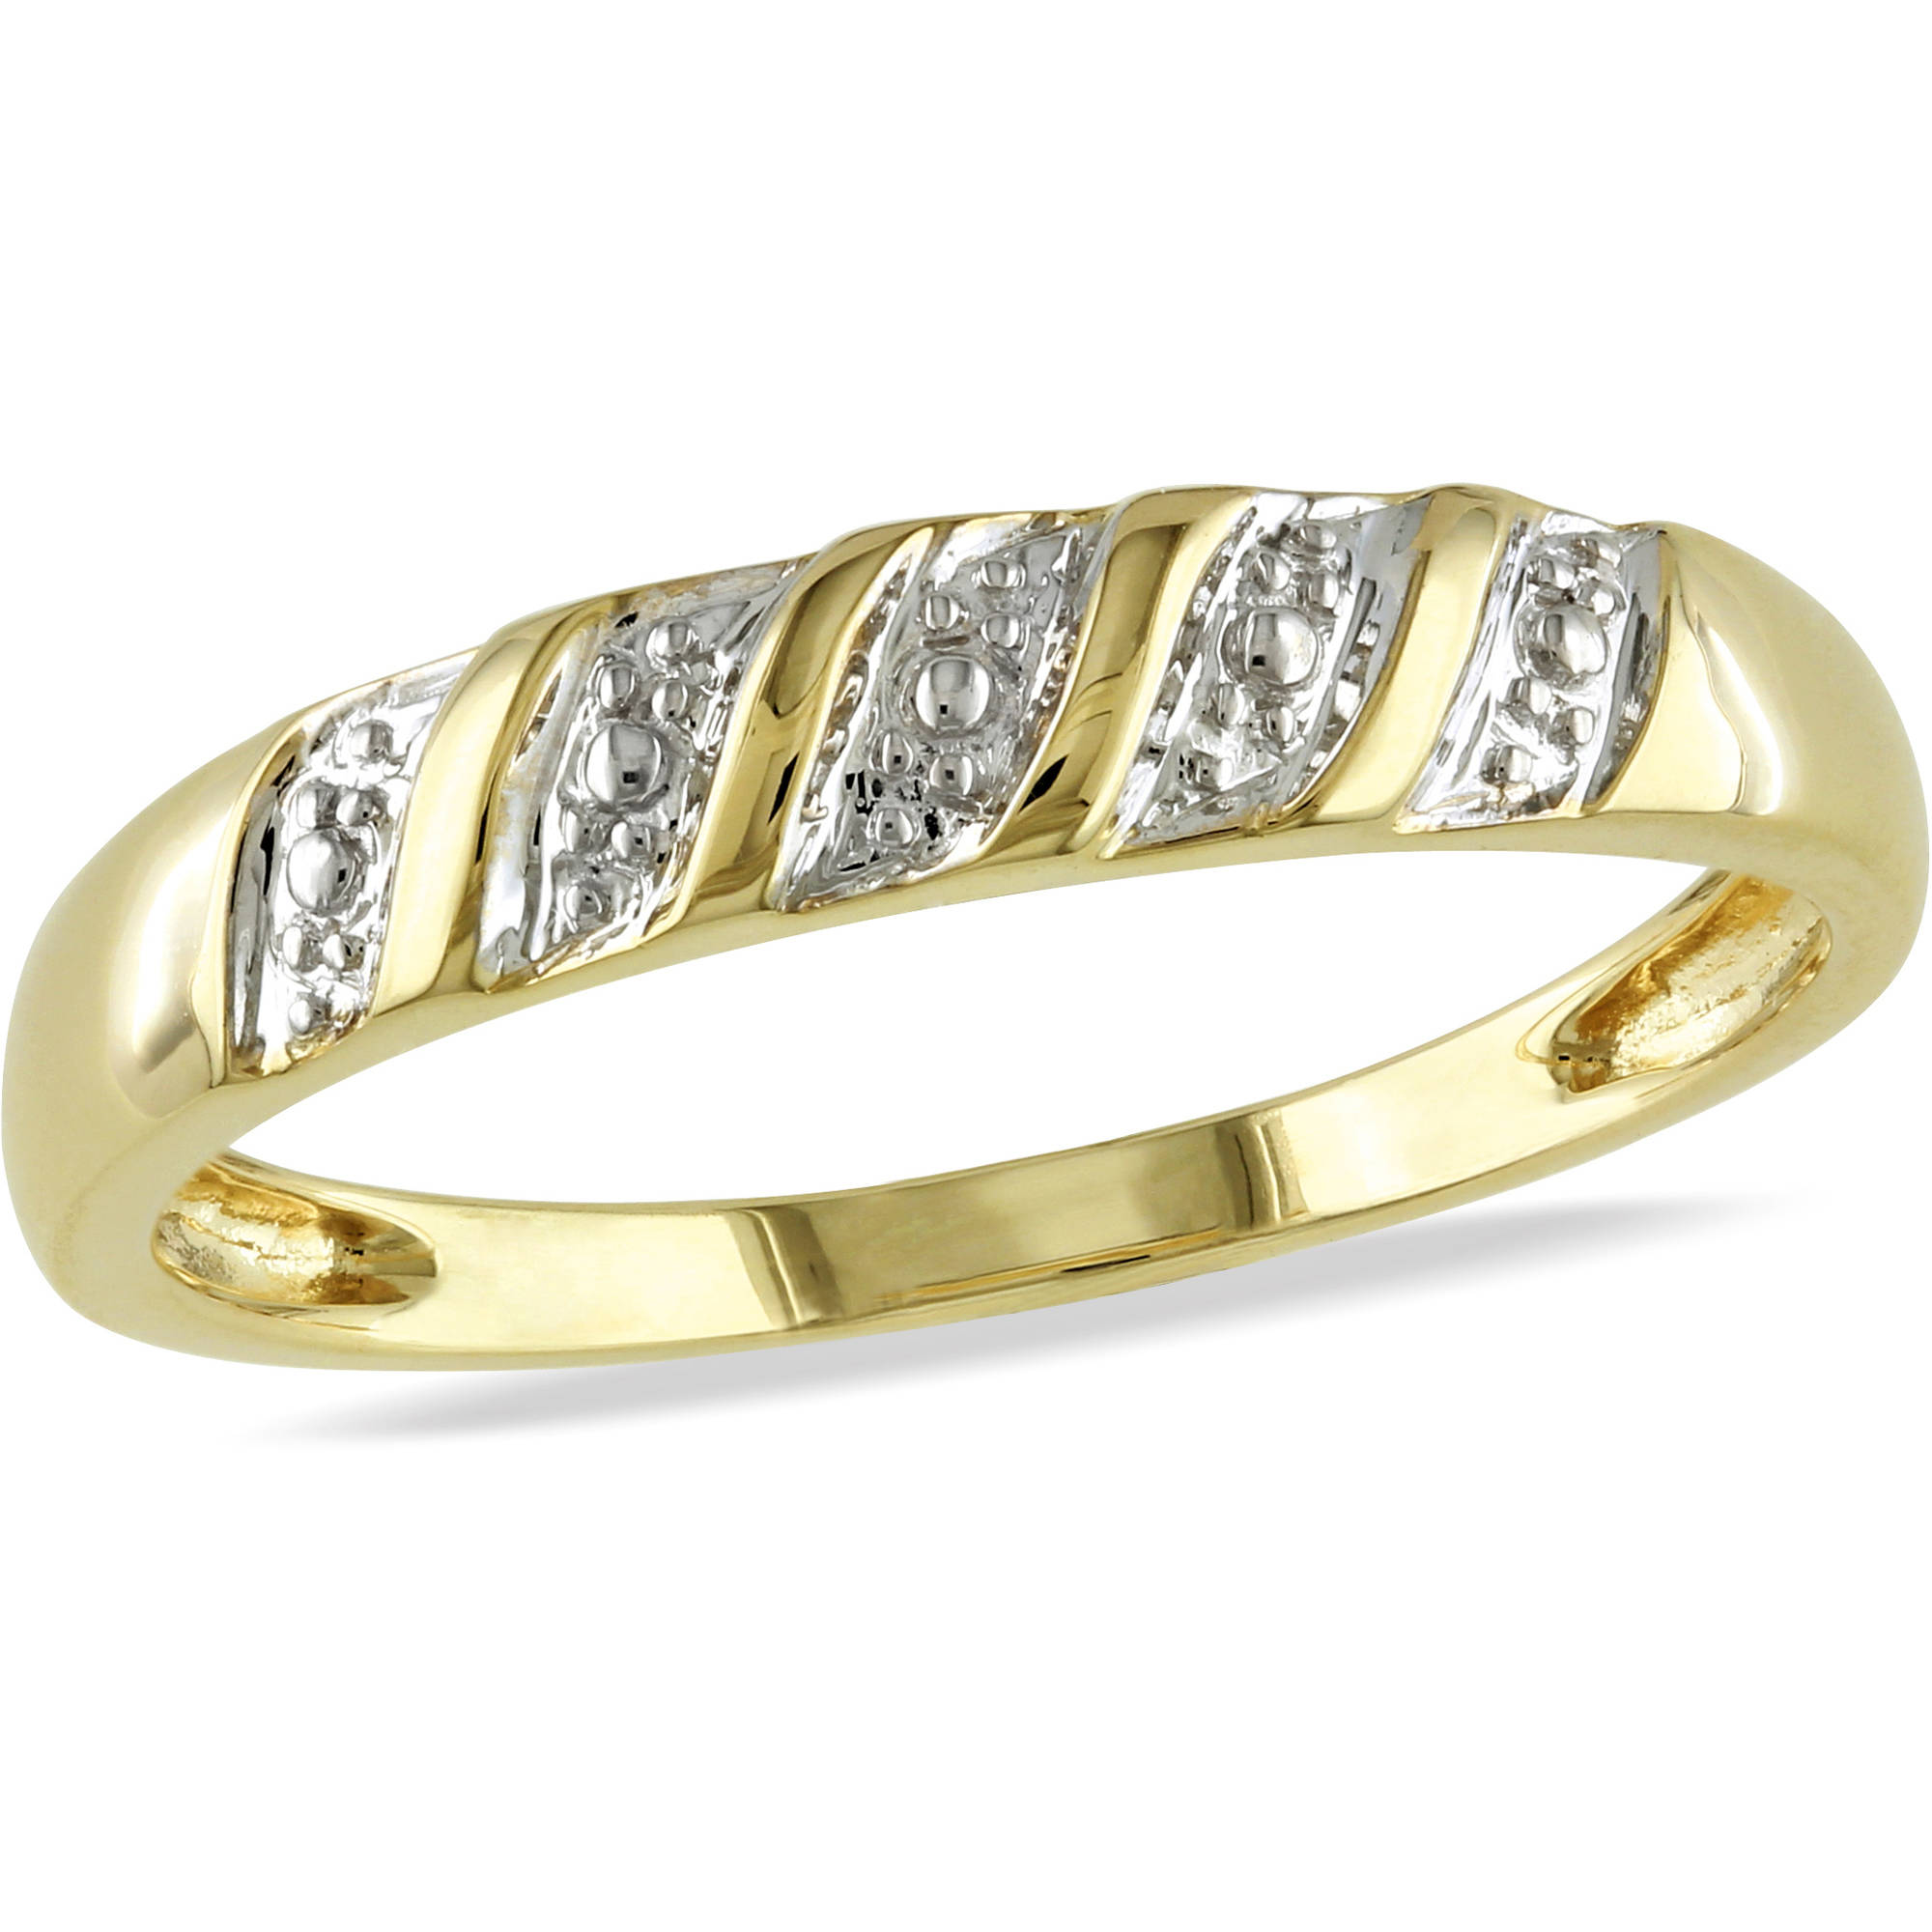 Miabella Men's 10kt Two-Tone Gold Diamond Illusion Wedding Band